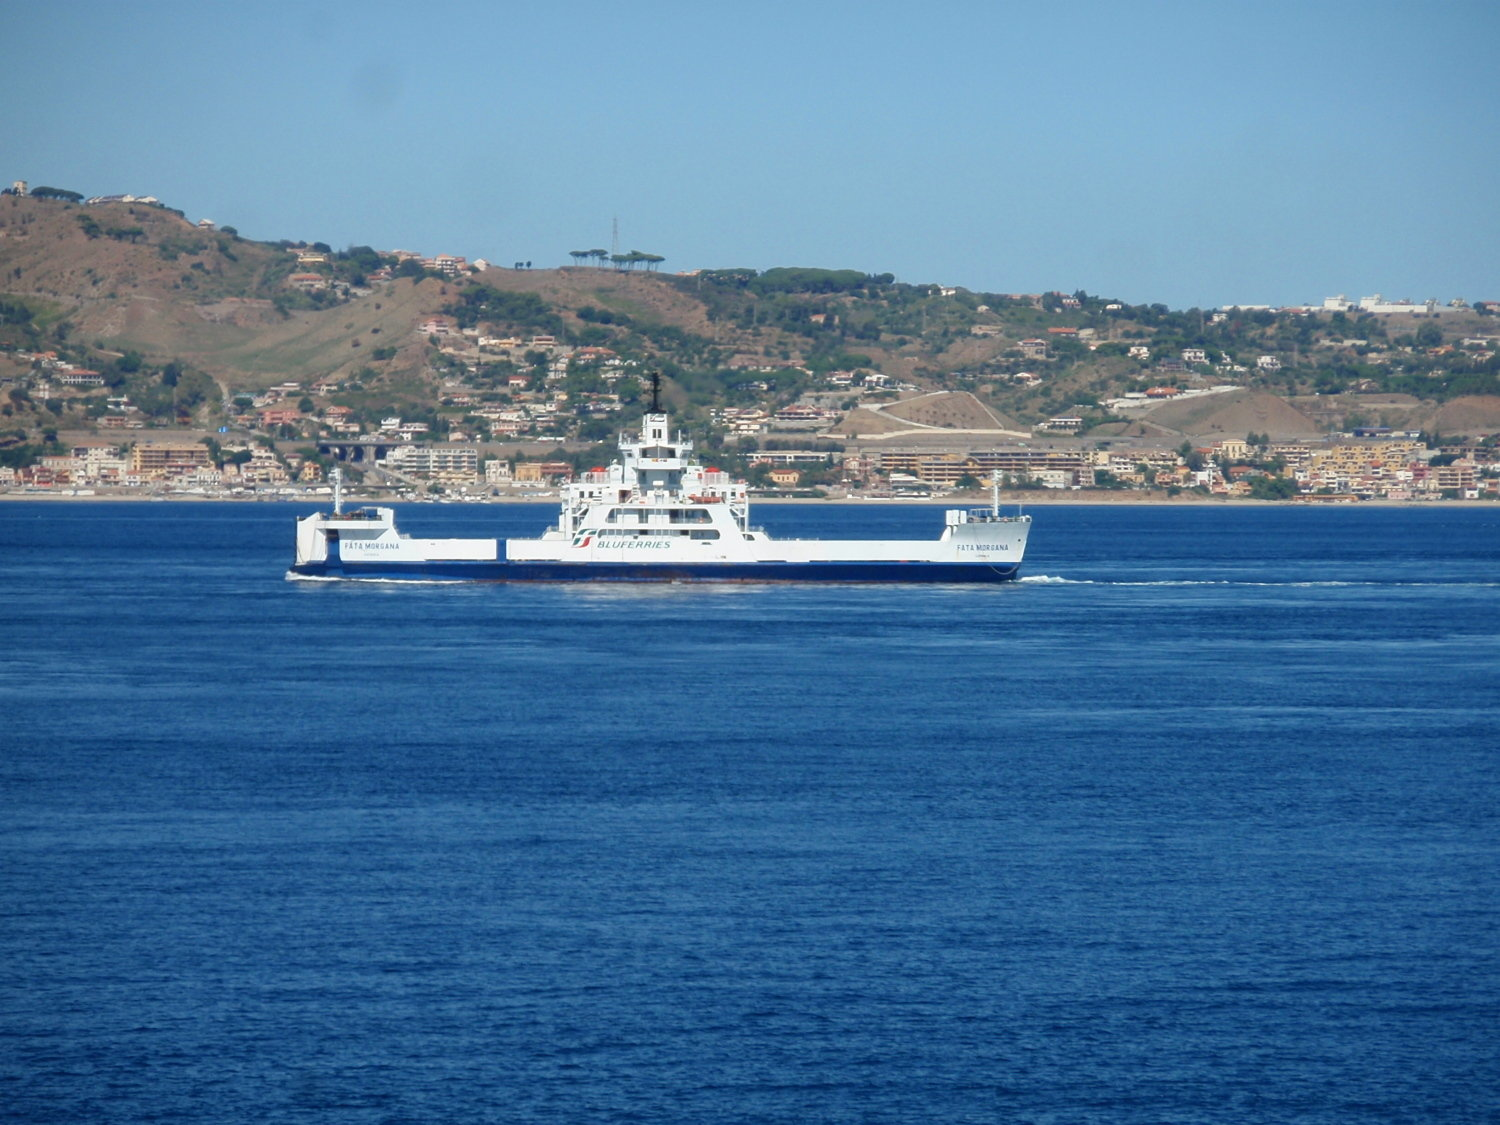 fata morgana off messina 220917